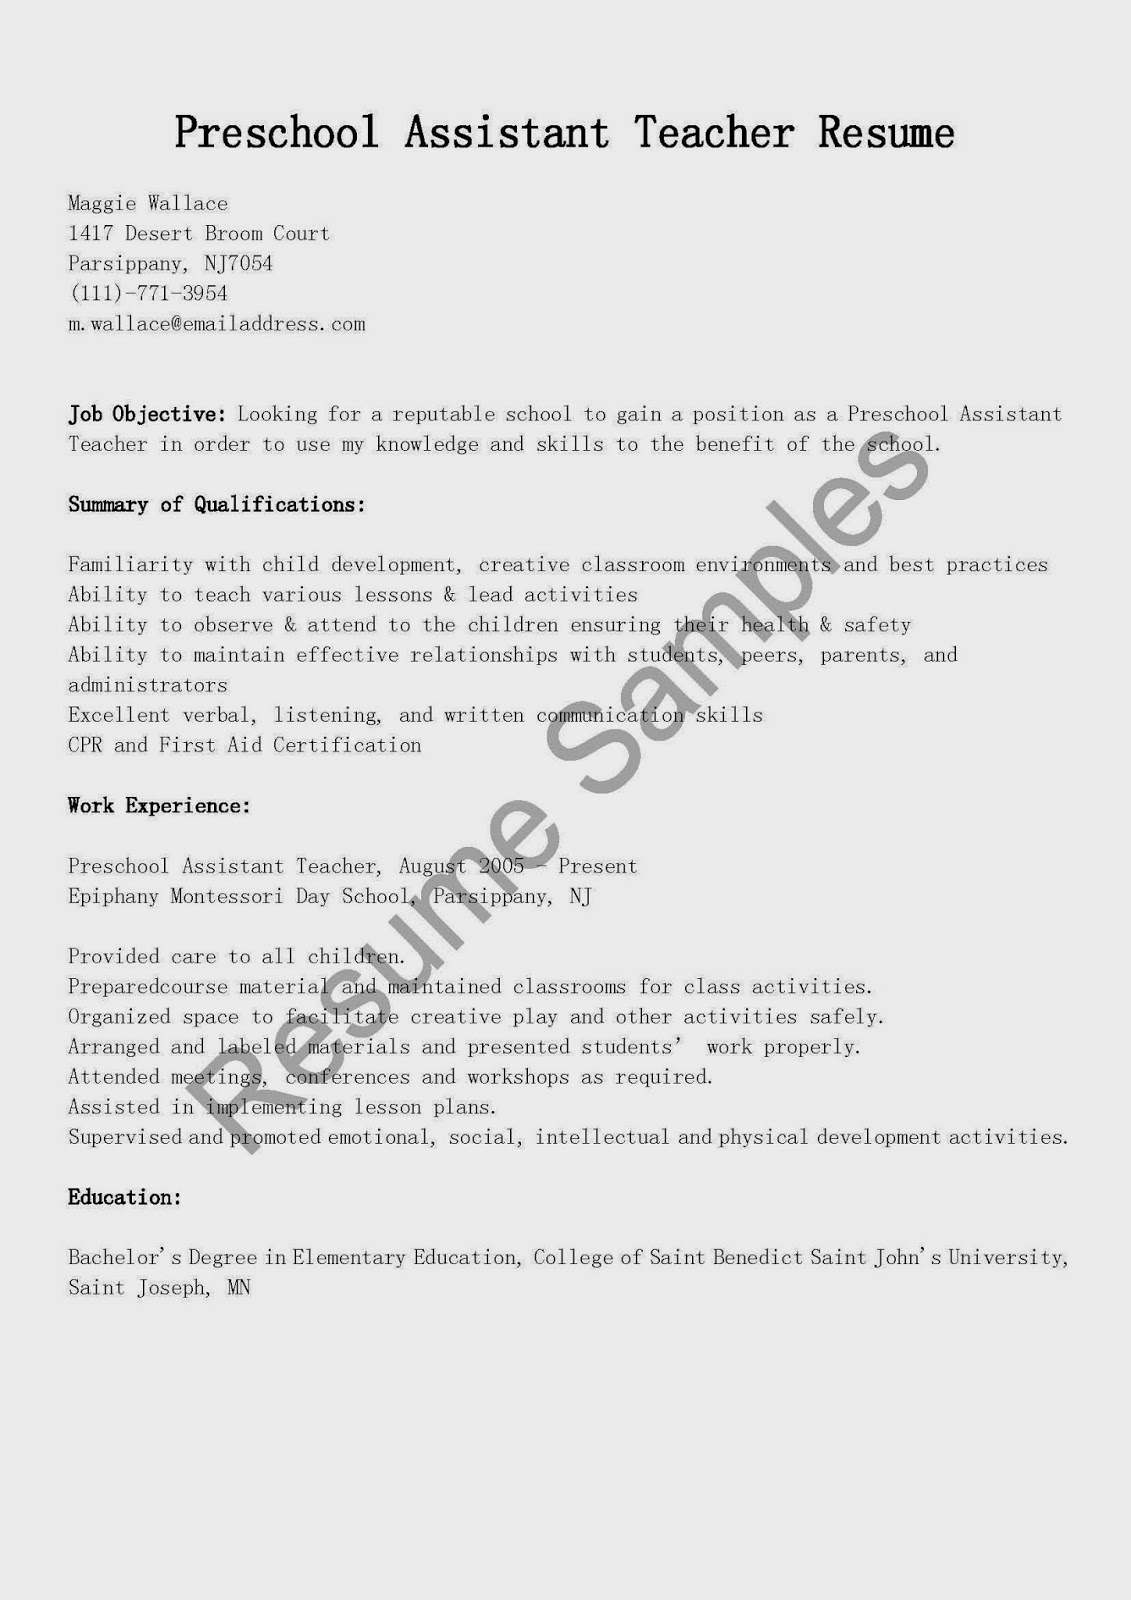 Best Free Professional Cover Letter Samples Alib